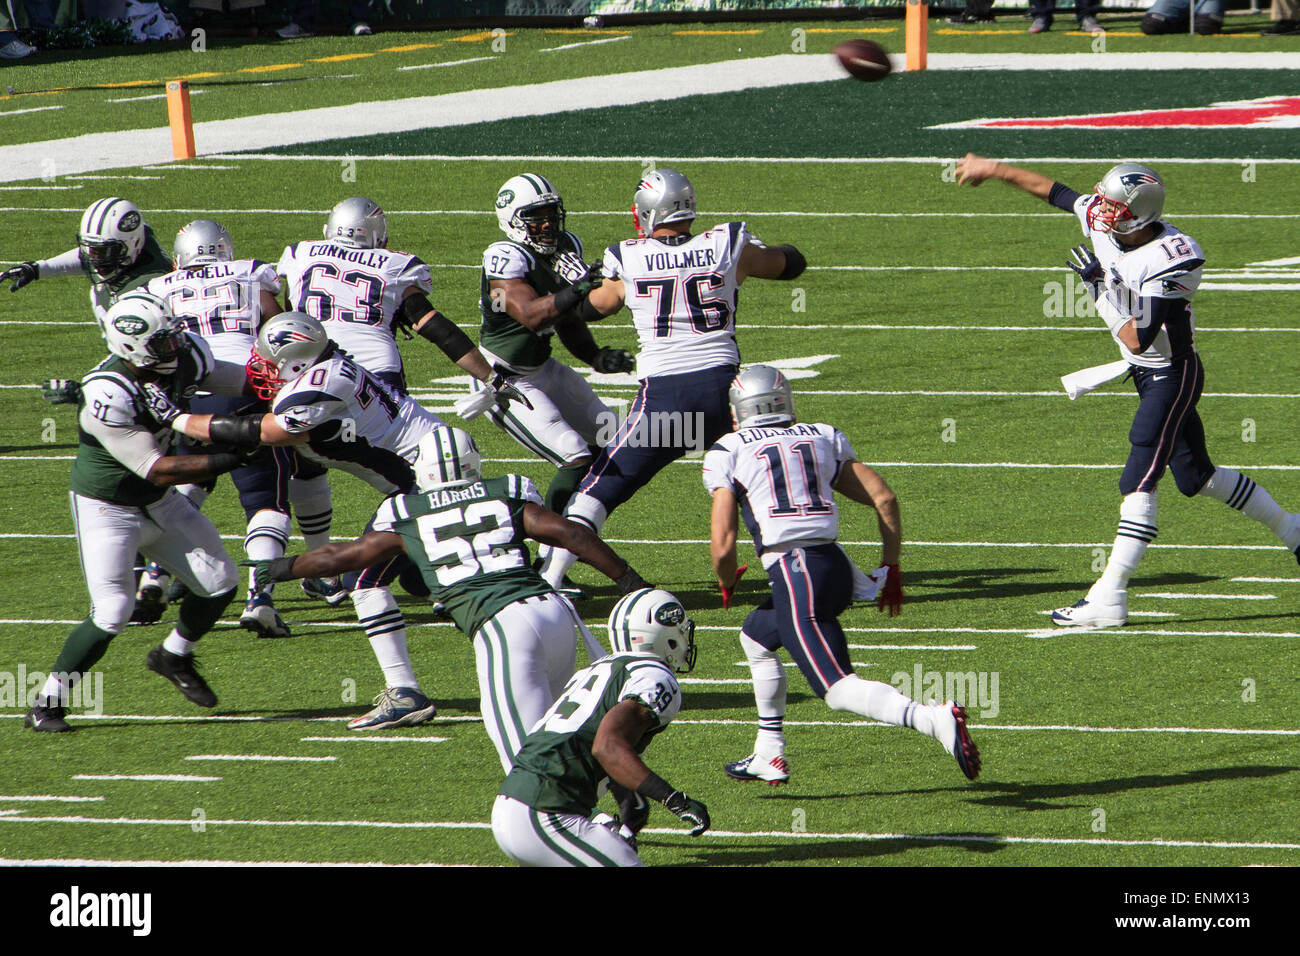 Tom Brady- New England Patriots quarterback completes a pass-play during a 2014 regular season match-up vs. the - Stock Image